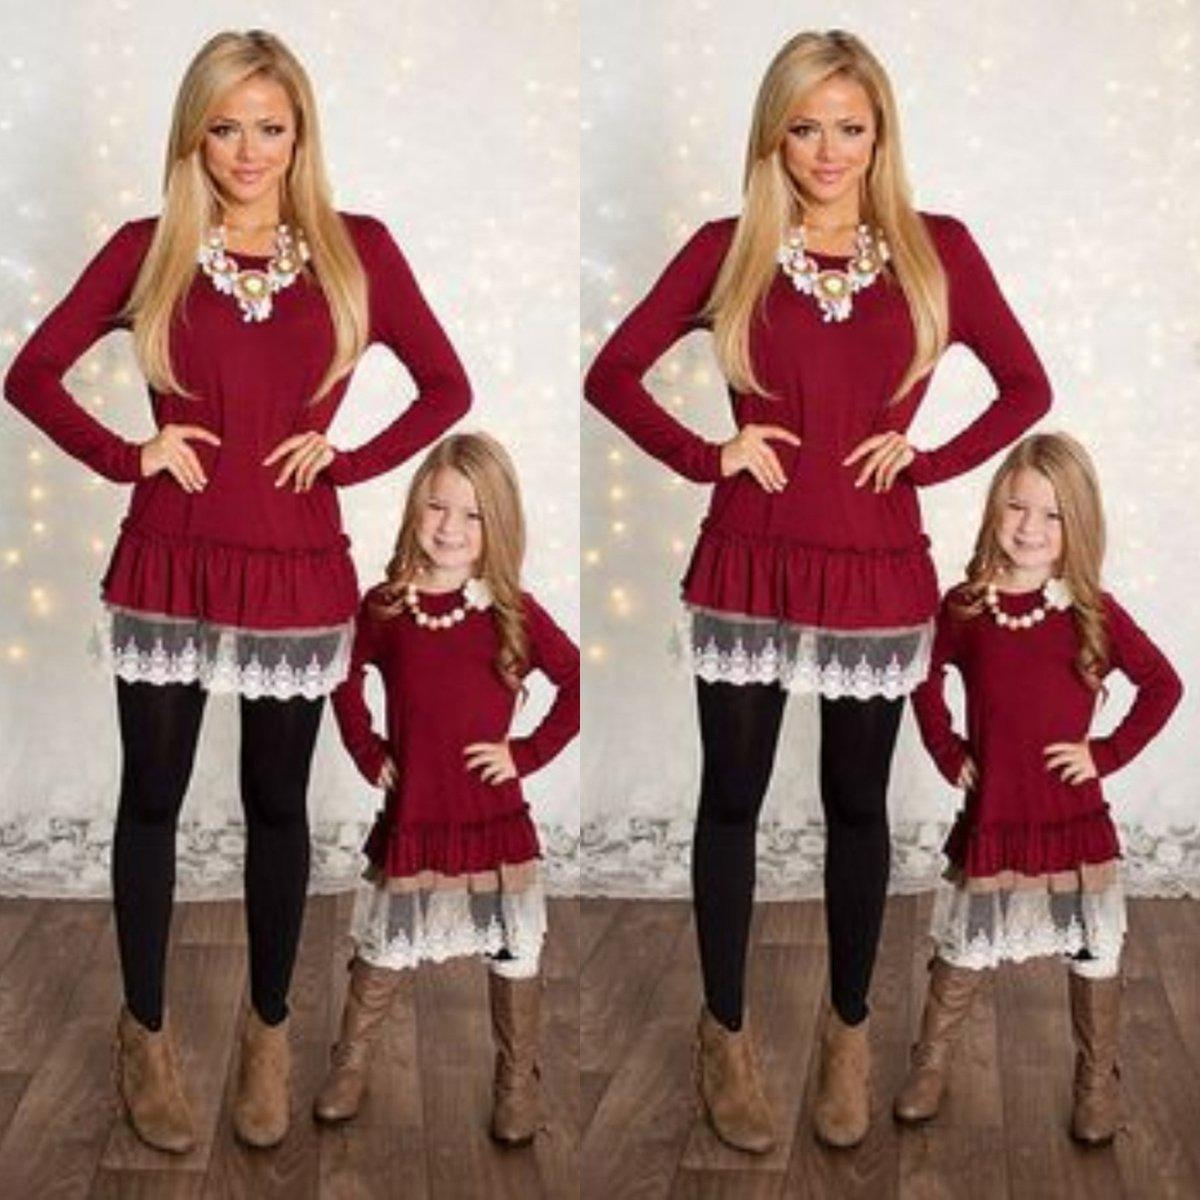 Mommy And Me Fashion Dresses Casual Mother Daughter Dresses Lace Patchwork  Red Solid Long Sleeves Family Matching Outfits Baby Kids Clothes Baby And  Daddy ... c59e559ae